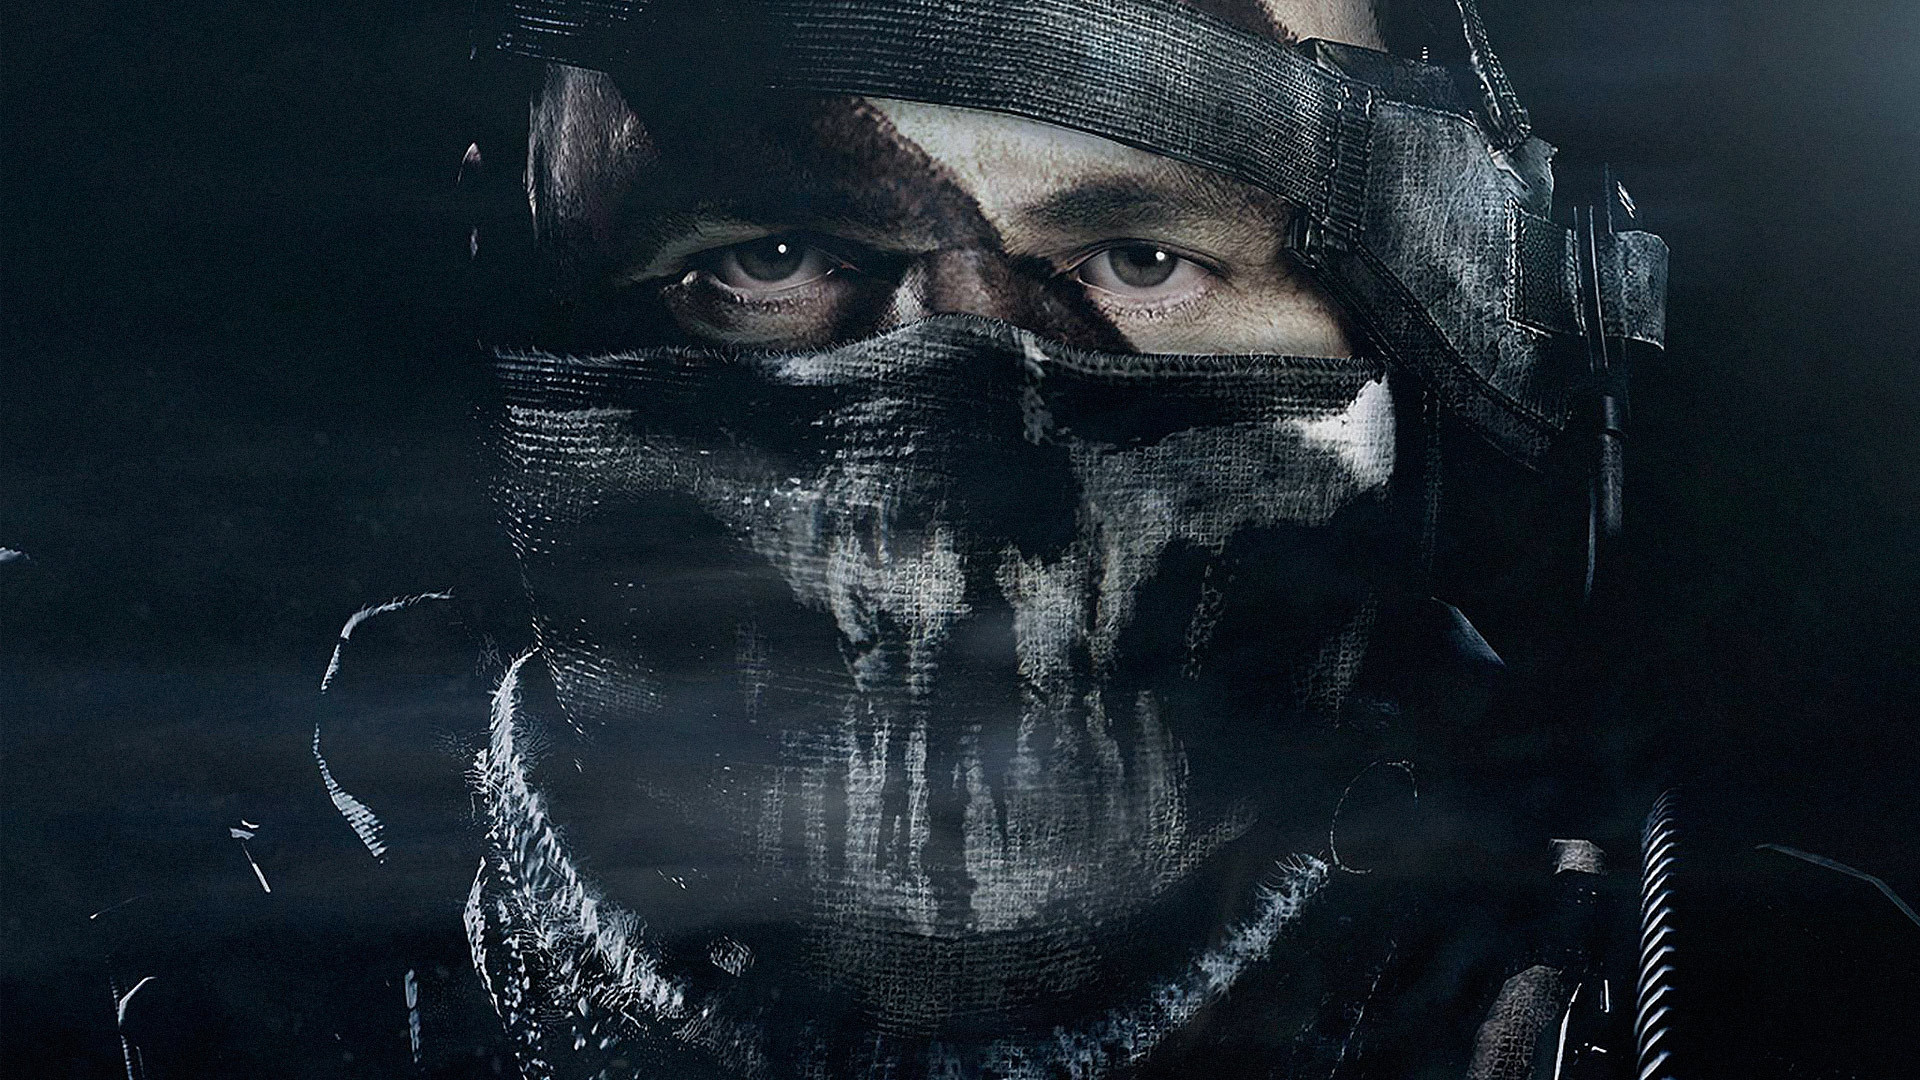 176x220 Call Of Duty Ghosts Game Activision 176x220 Resolution